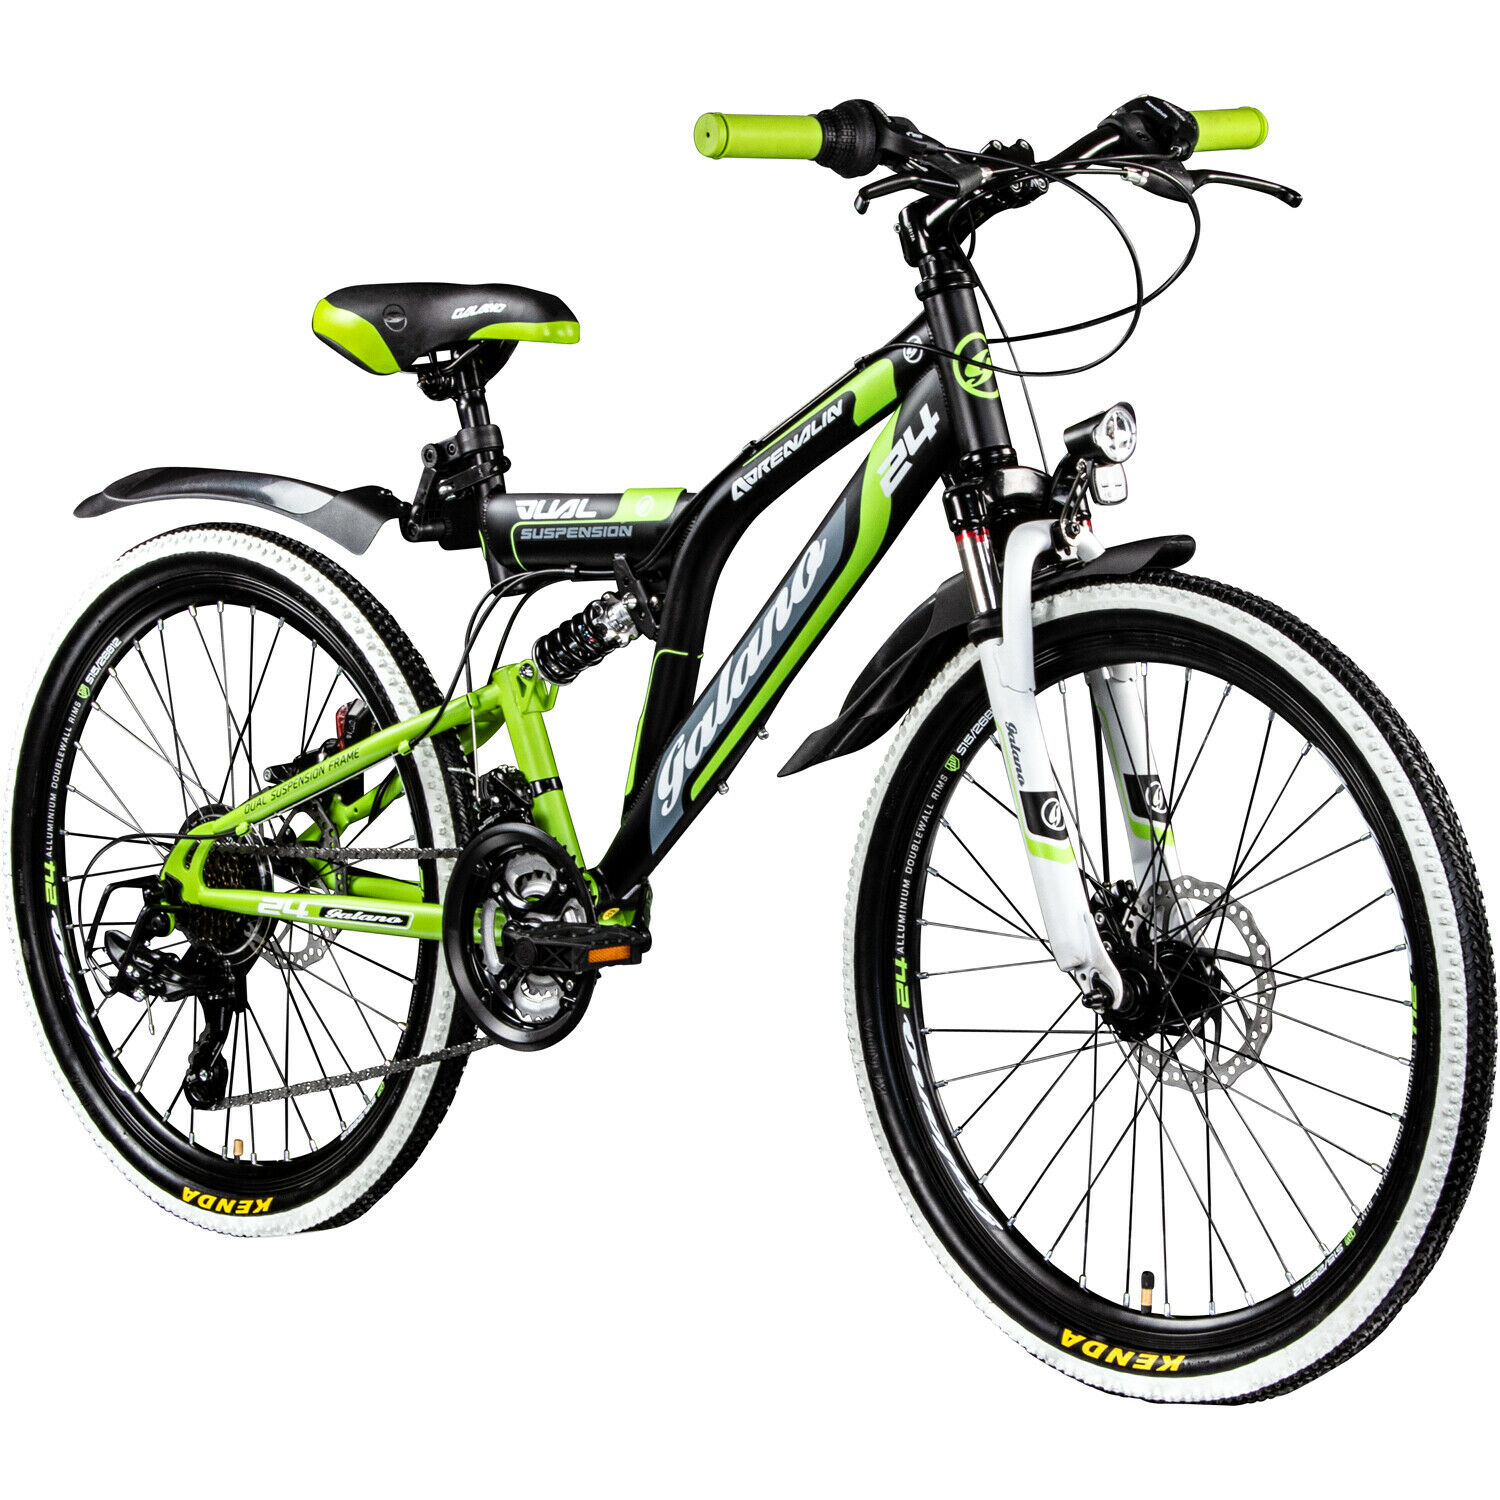 mountainbike 24 zoll mtb fully galano adrenalin ds stvzo. Black Bedroom Furniture Sets. Home Design Ideas